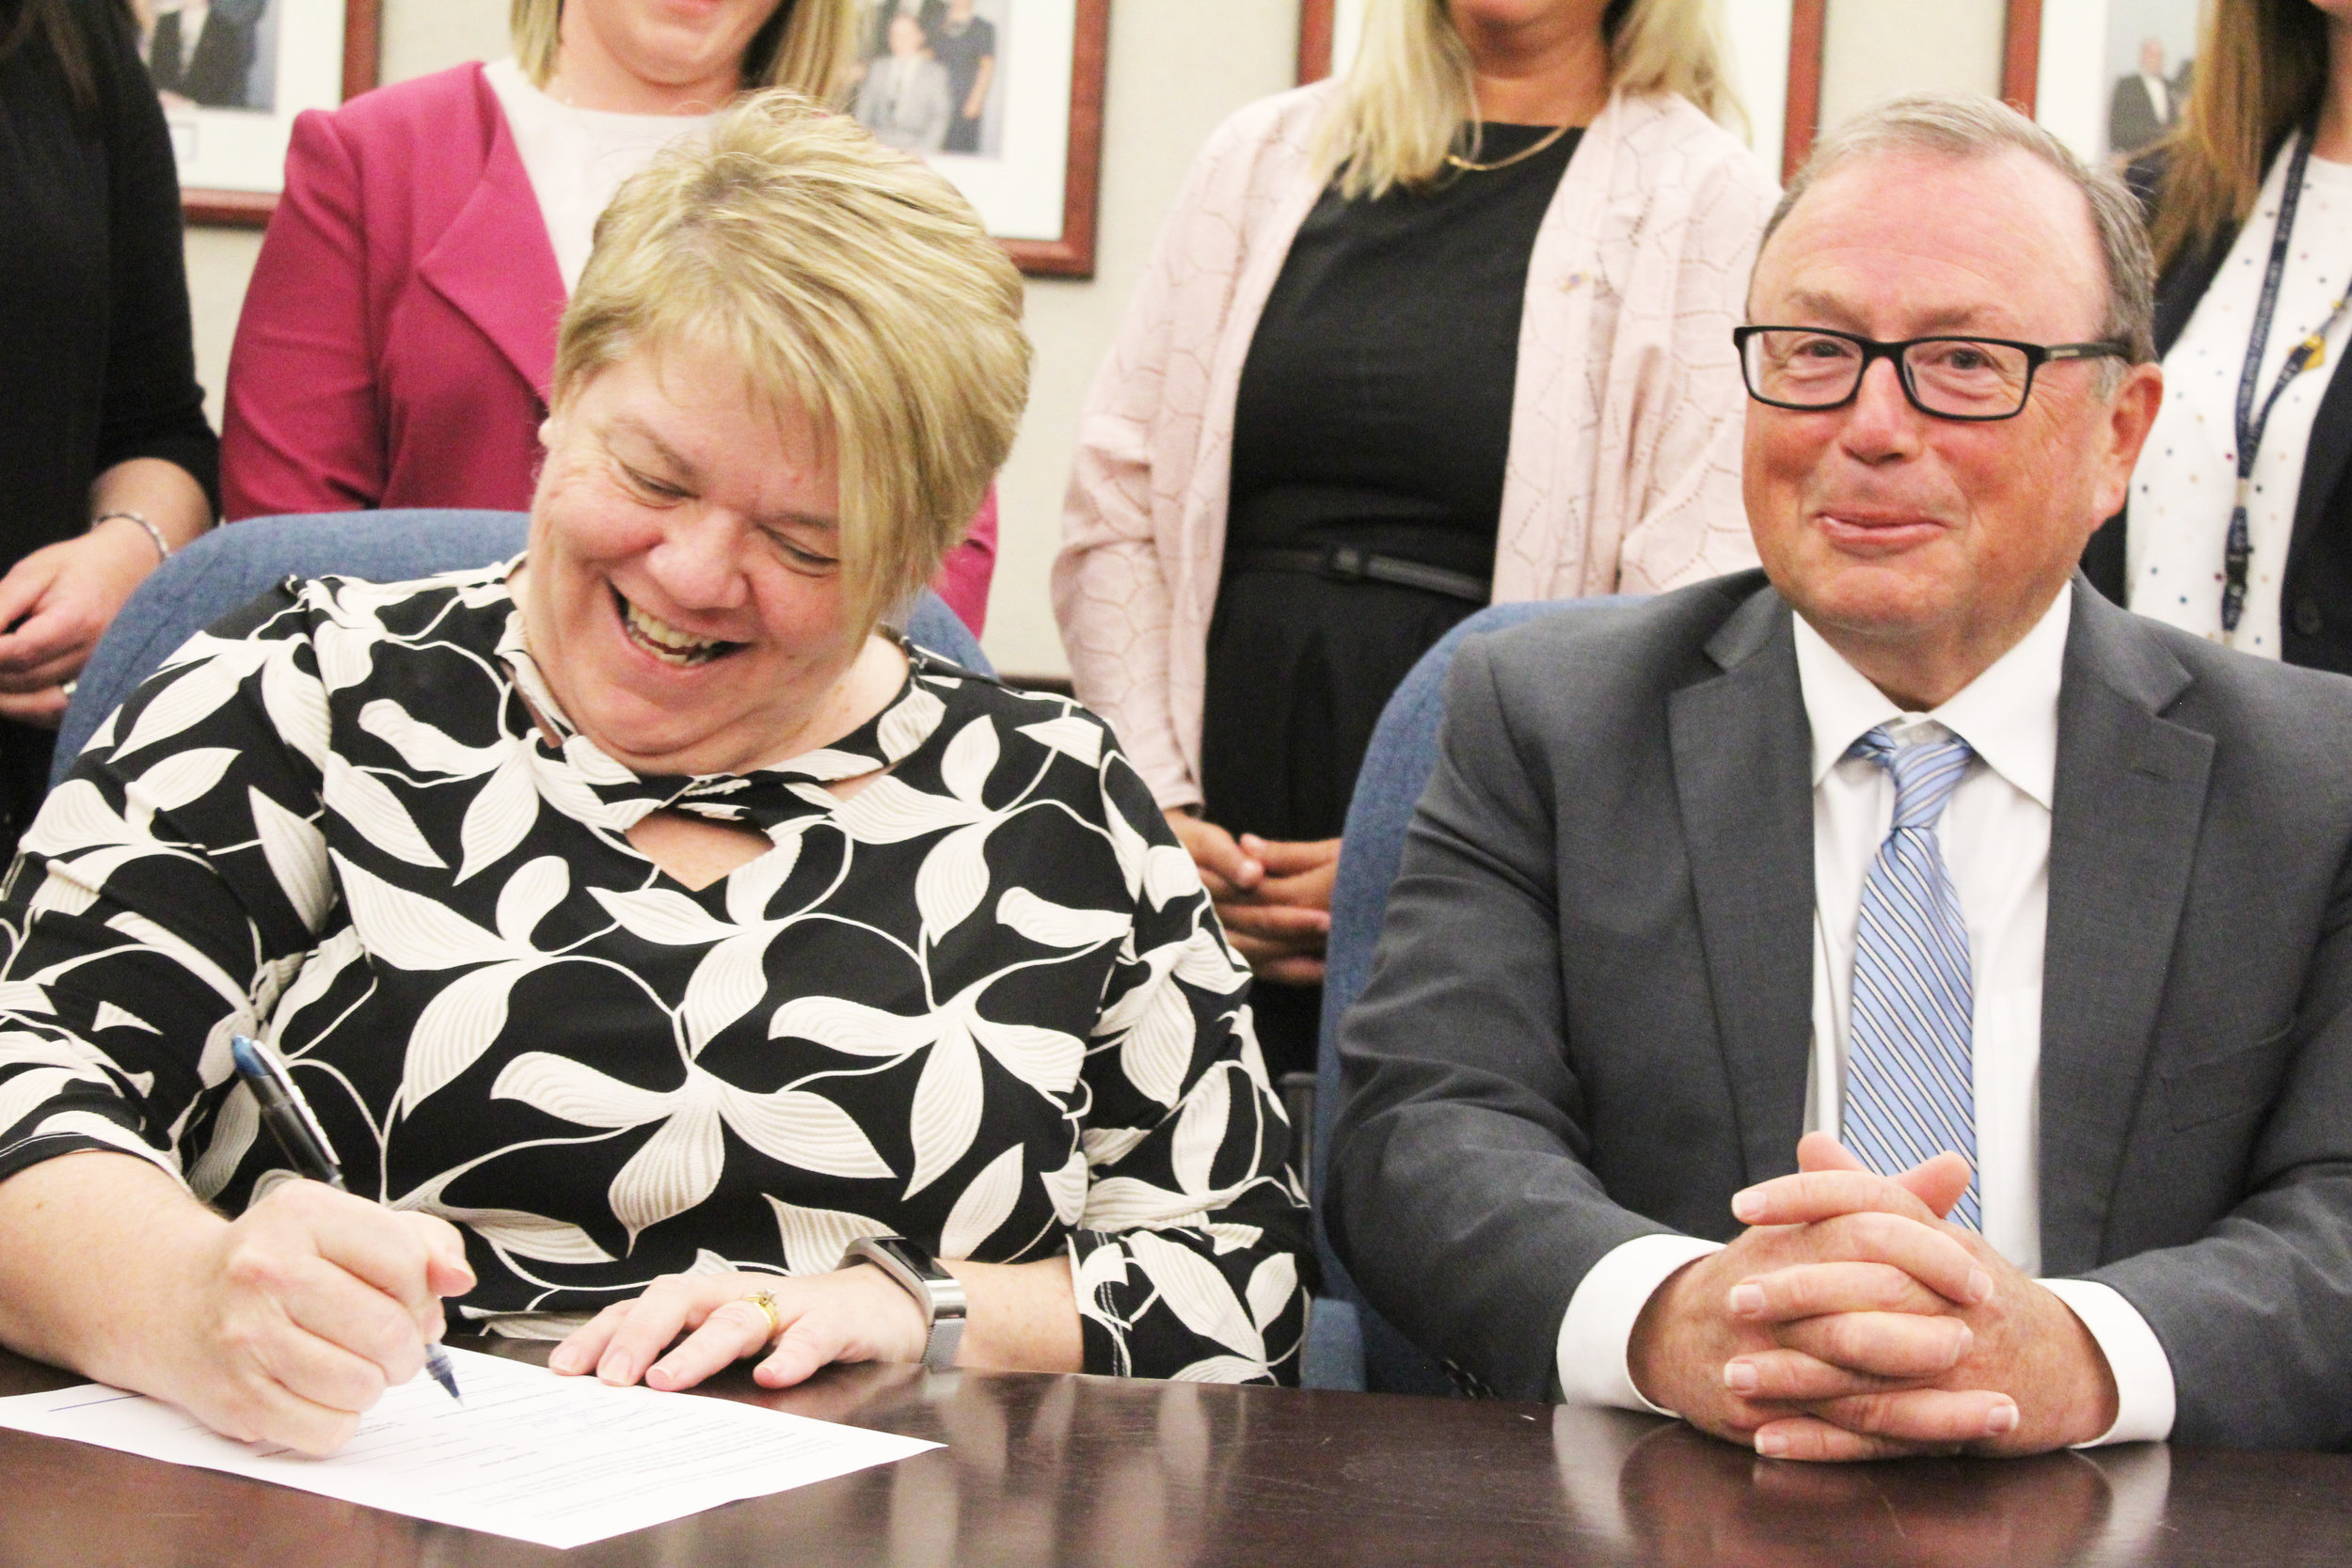 Iris Kirby House executive director Michelle Greene signs the memorandum with Mount Pearl mayor Dave Aker.